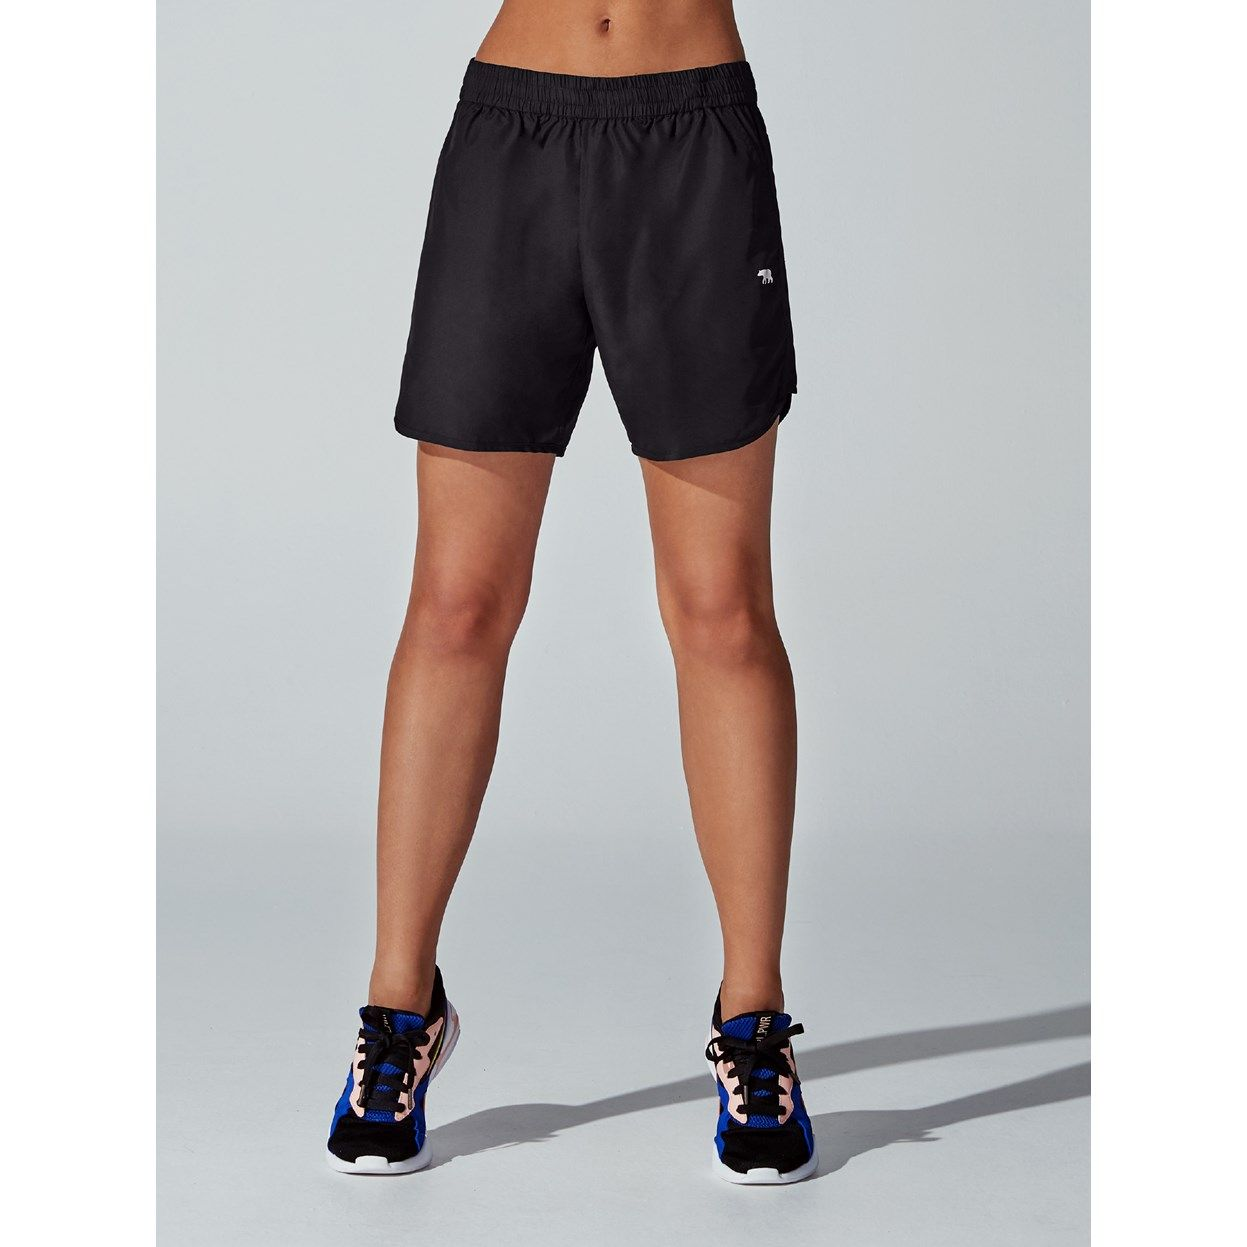 Women's Activewear and Workout Shorts, Running Bare Tempo